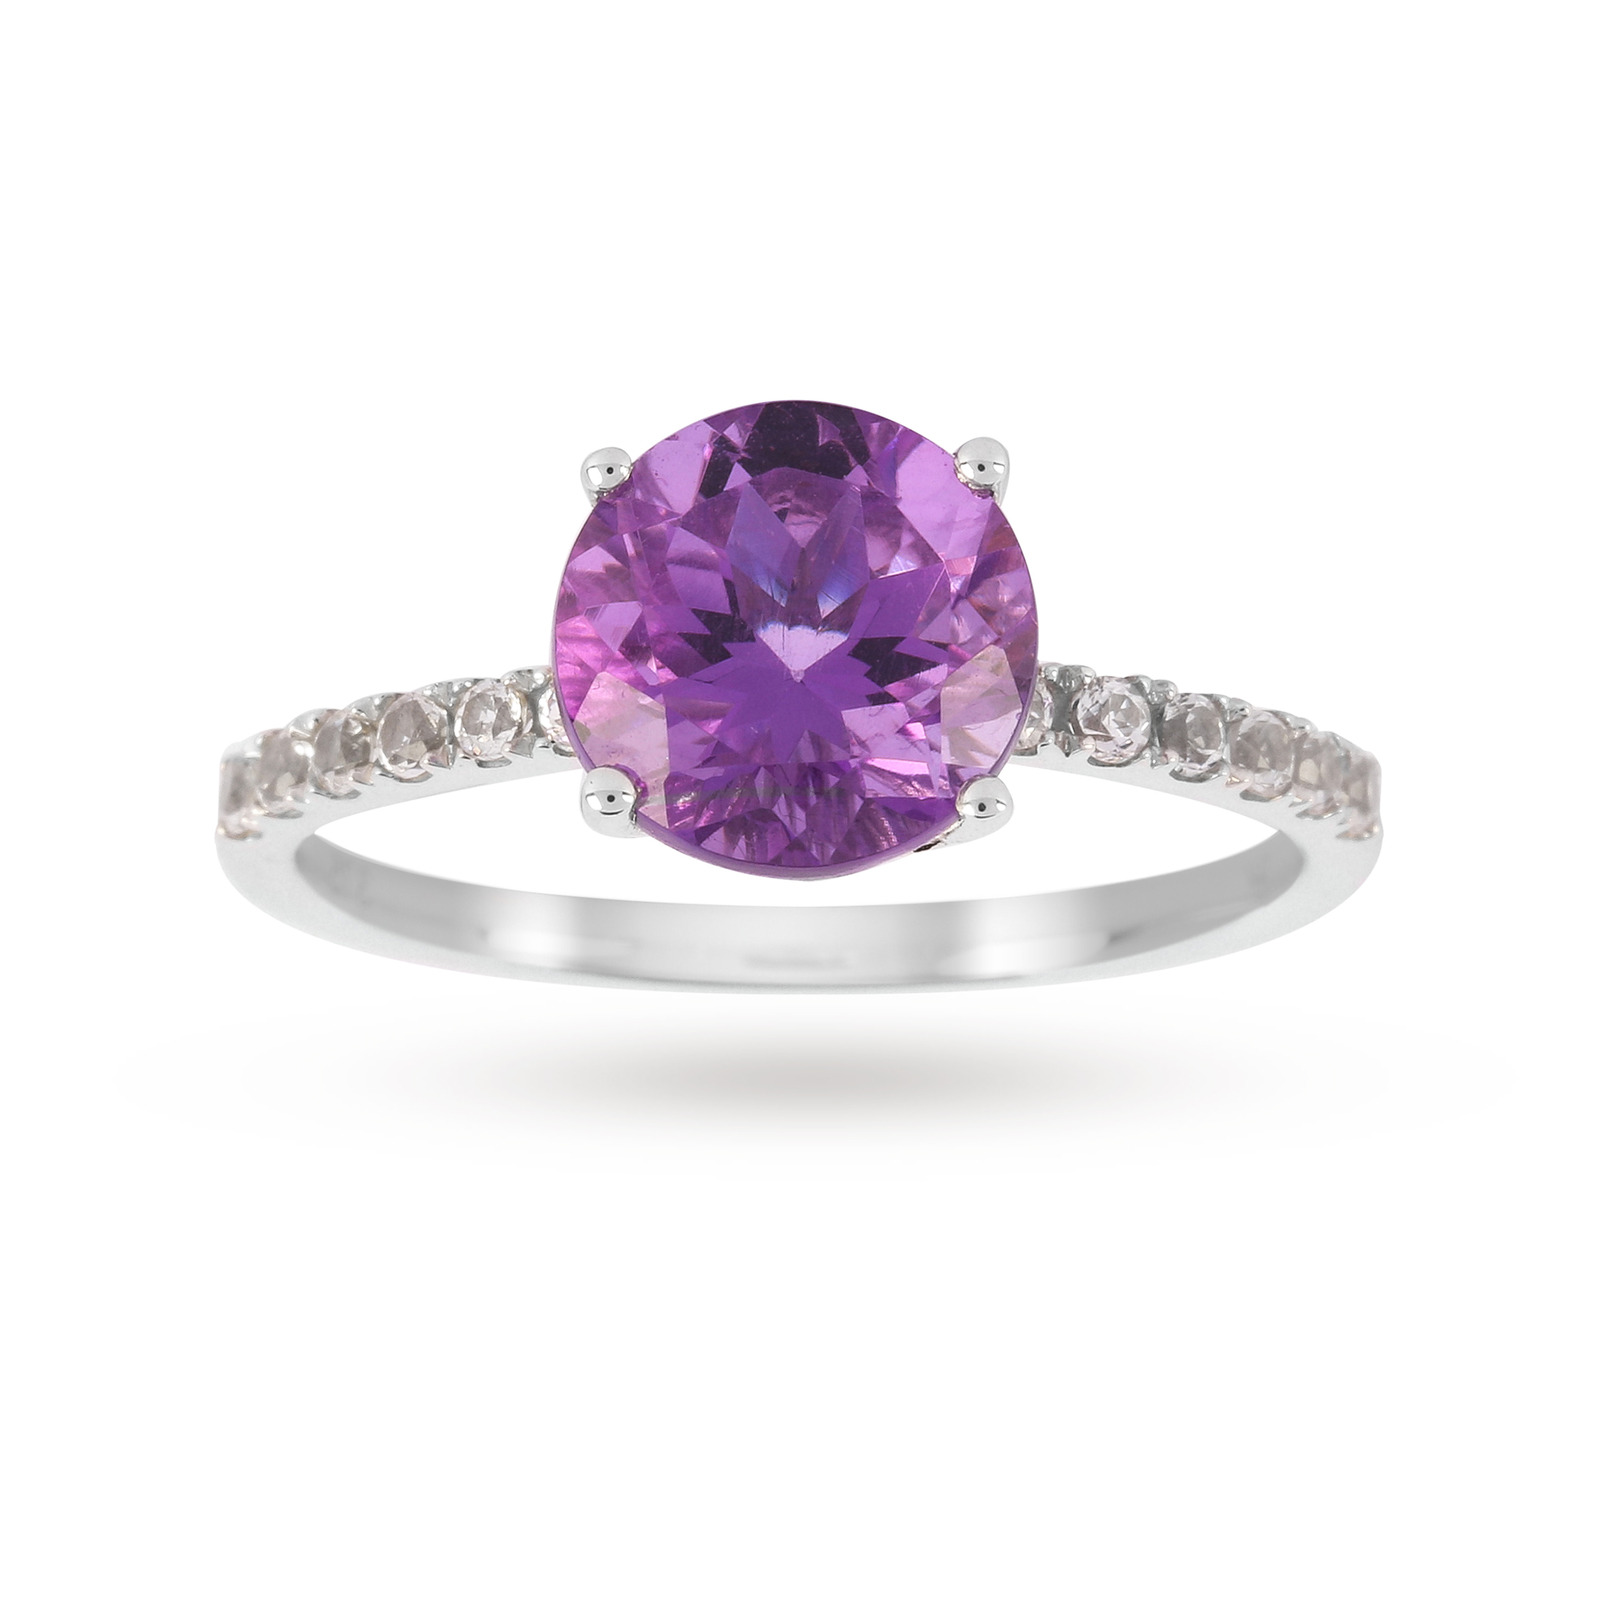 9ct White Gold 8x8mm Amethyst And 0.16ct White Topaz Ring - Ring Size J